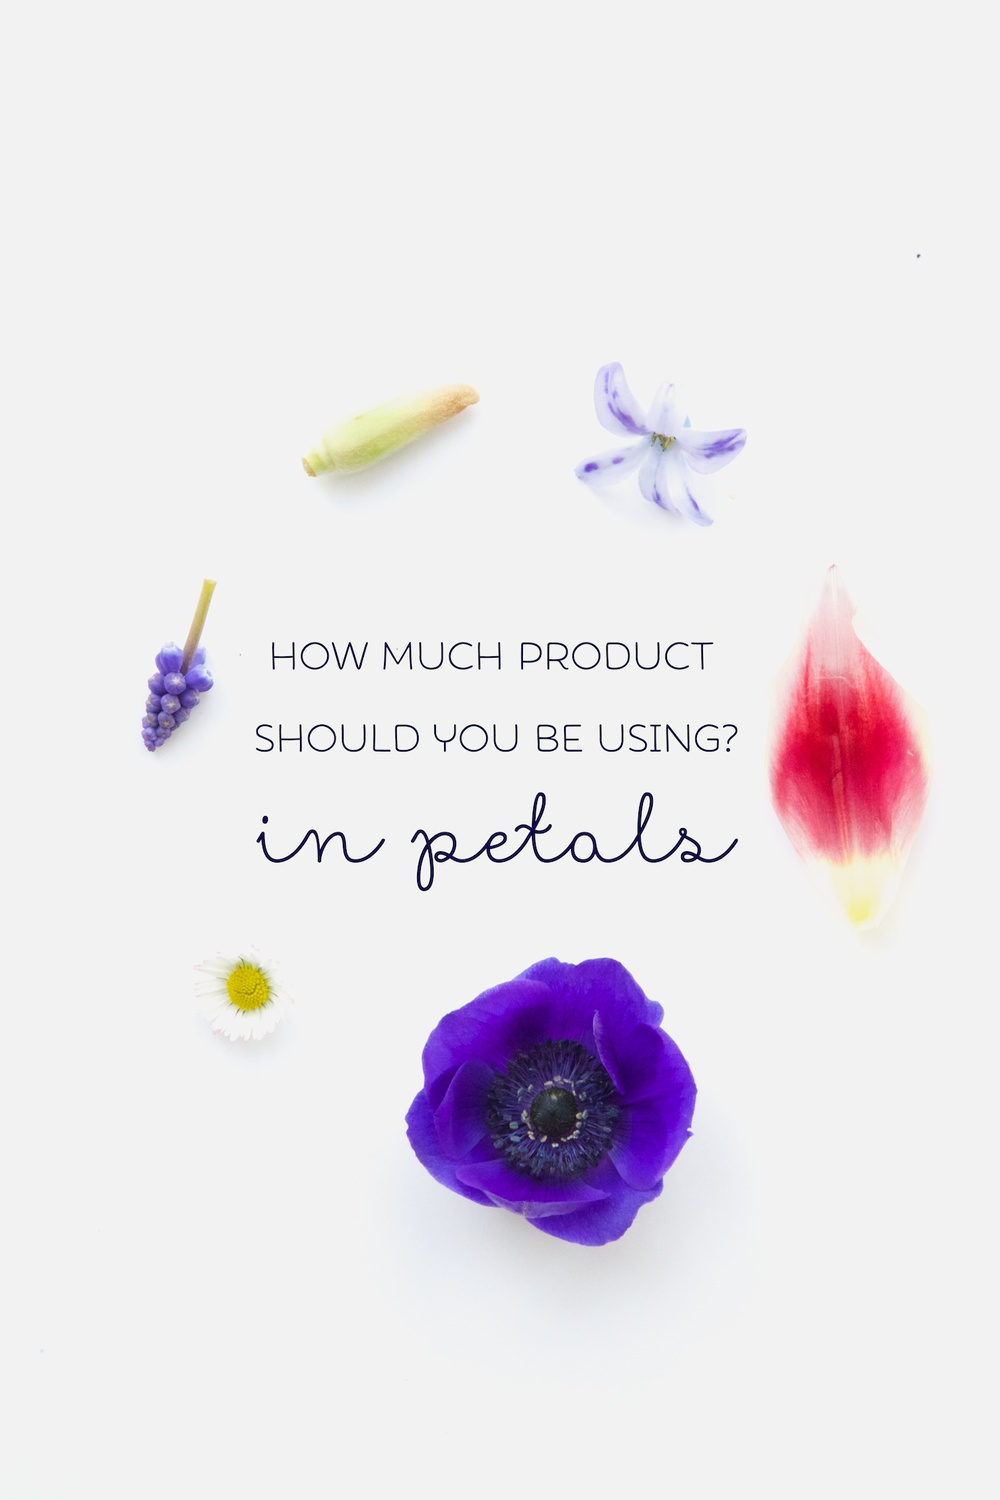 How much product to use